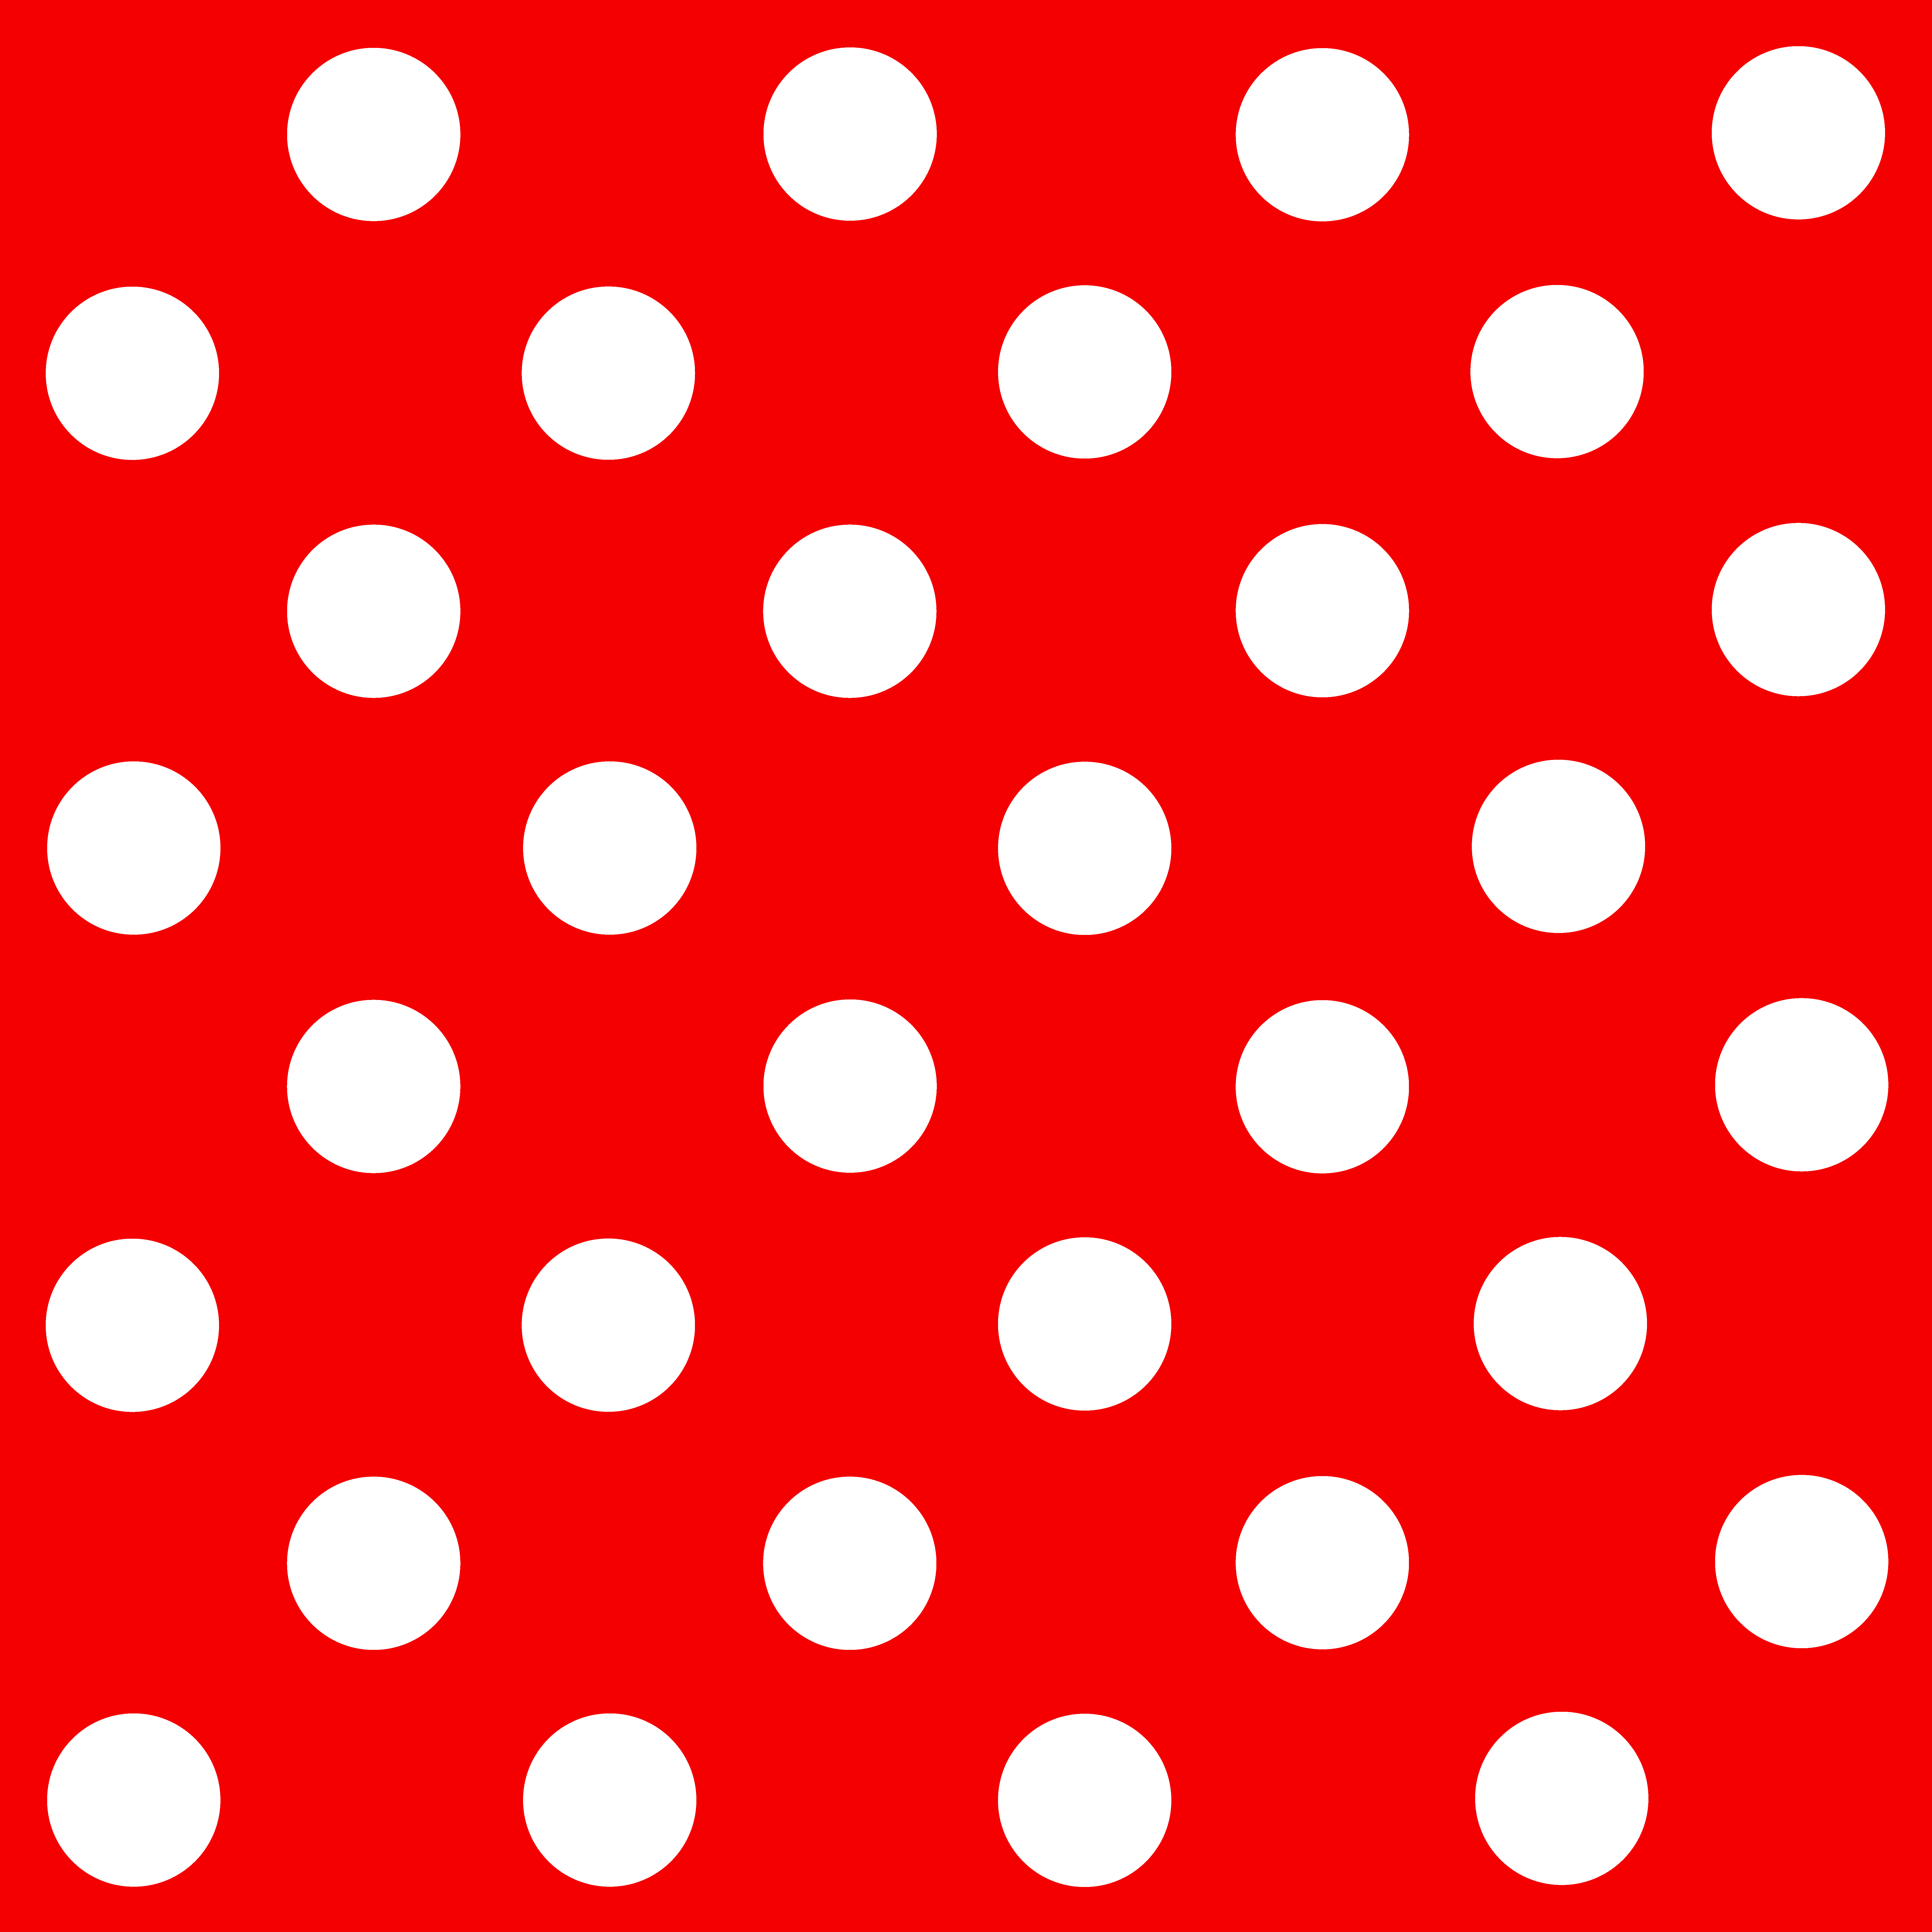 Css Shapes Draw Background With White Dots Stack Enter